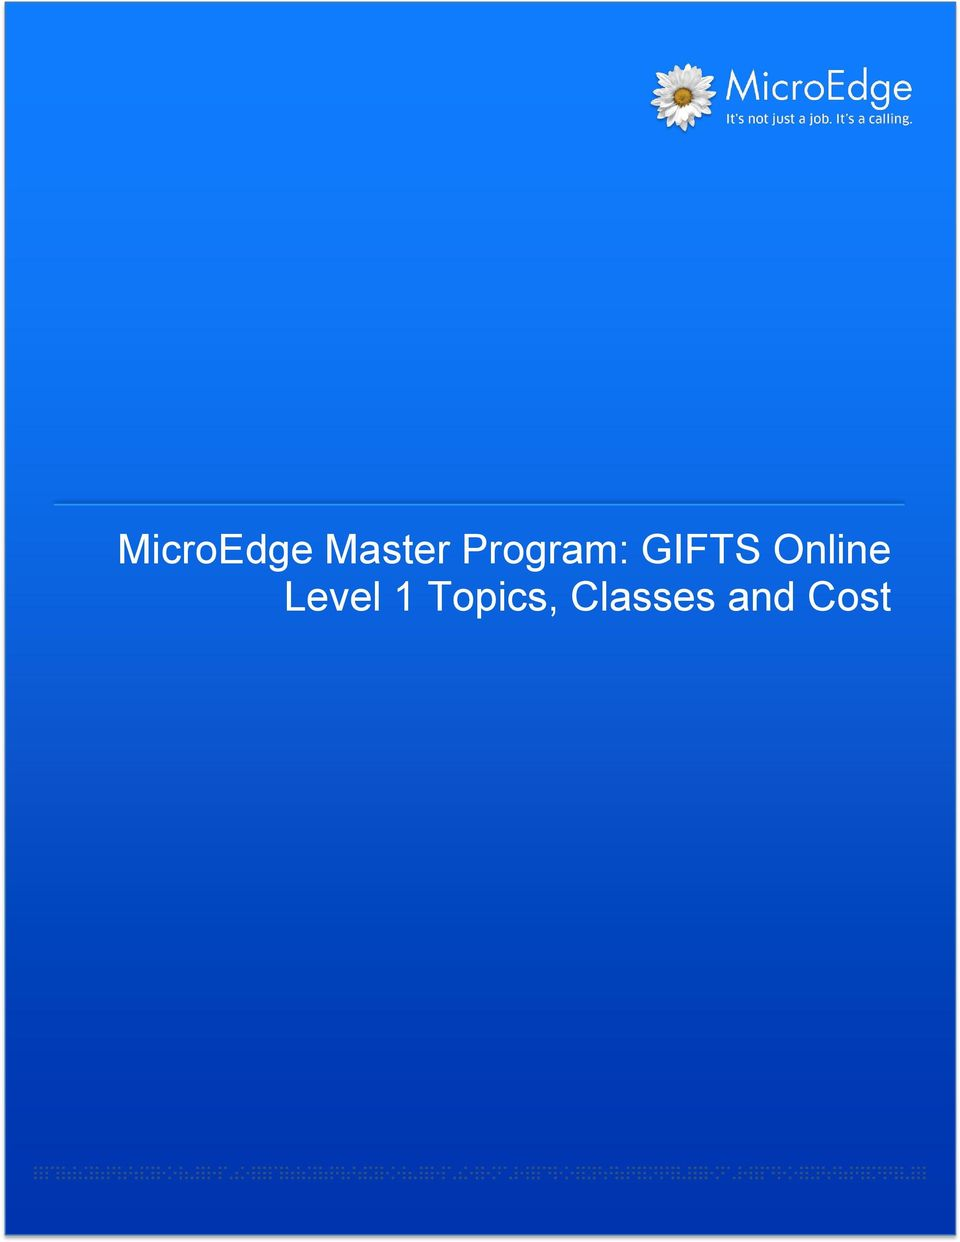 3 MicroEdge Master GIFTS Online Level 1 Class Topics... 3 MicroEdge Master GIFTS Online Level 1 Class Descriptions... 5 MicroEdge Master GIFTS Online Level ...